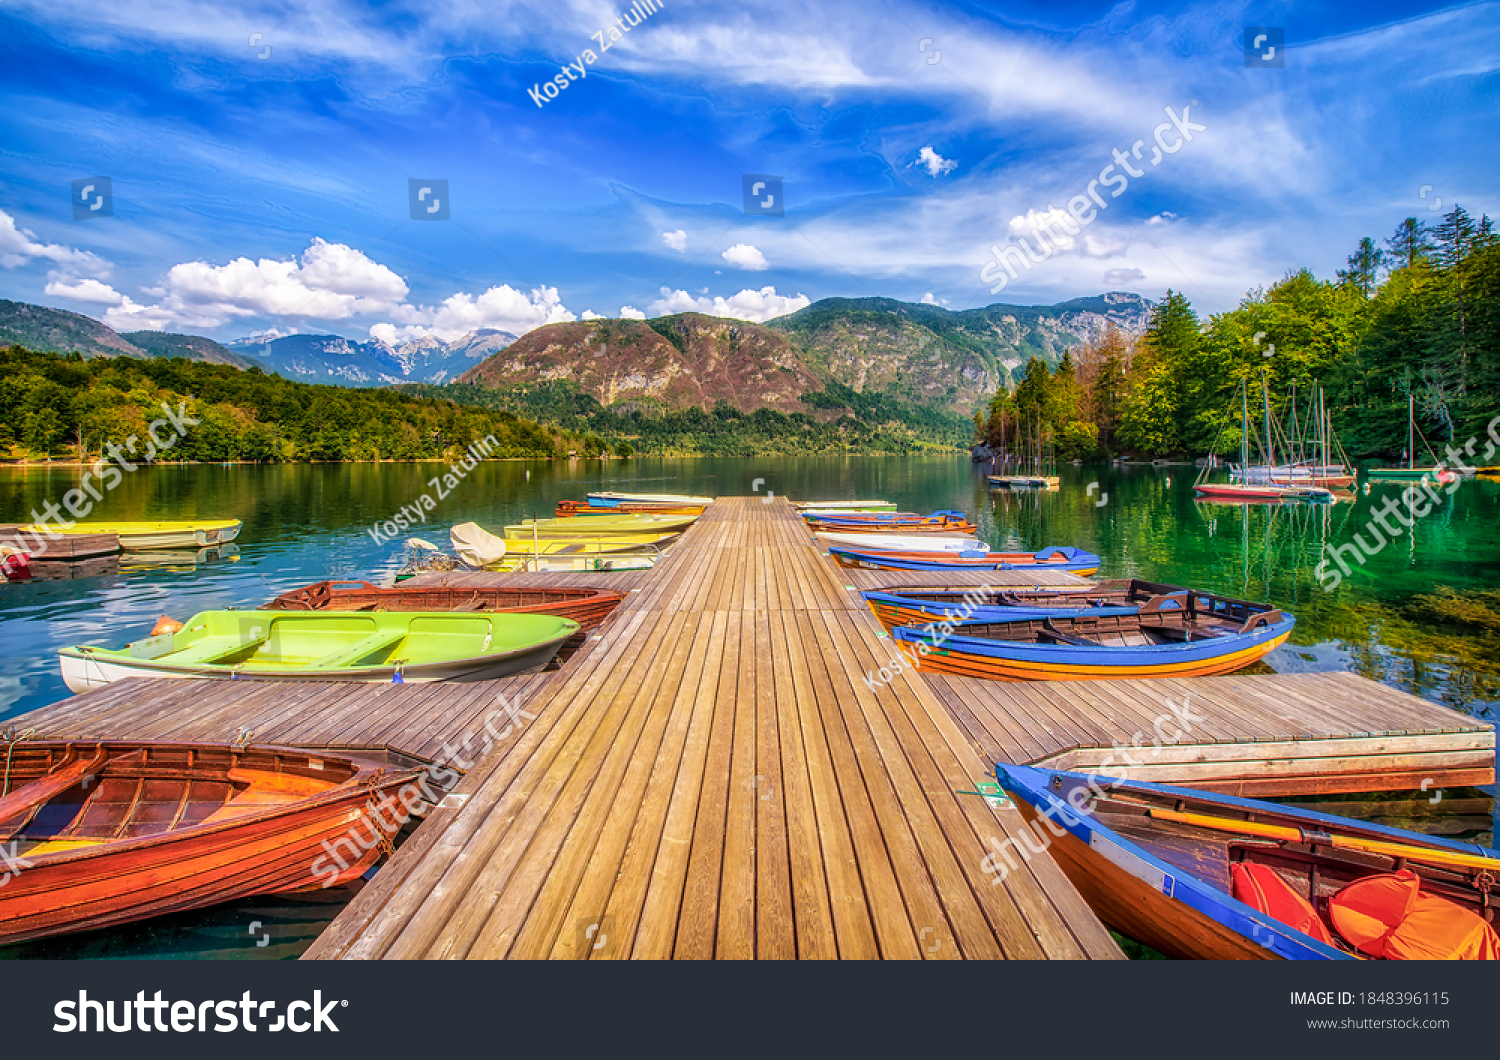 Boat dock on the lake. Lake pier boats. Boats on lake dock. Boats on lake pier #1848396115